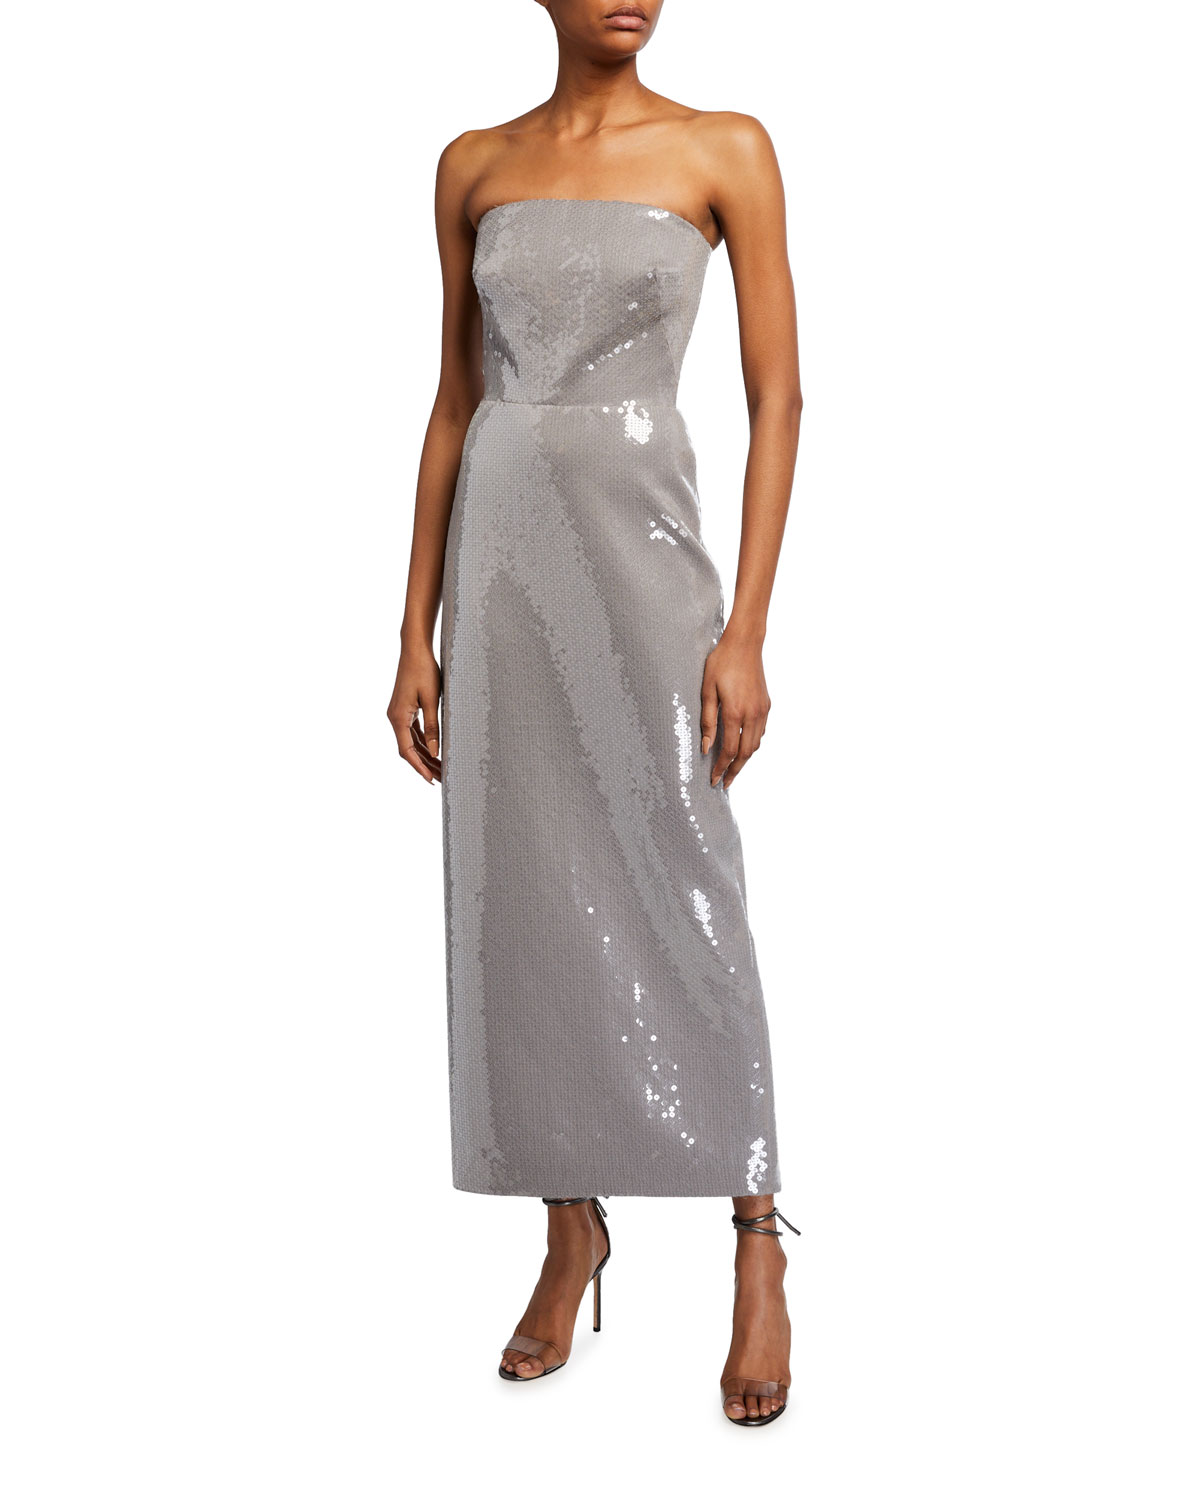 Brandon Maxwell Strapless Sequined Gabardine Cocktail Dress